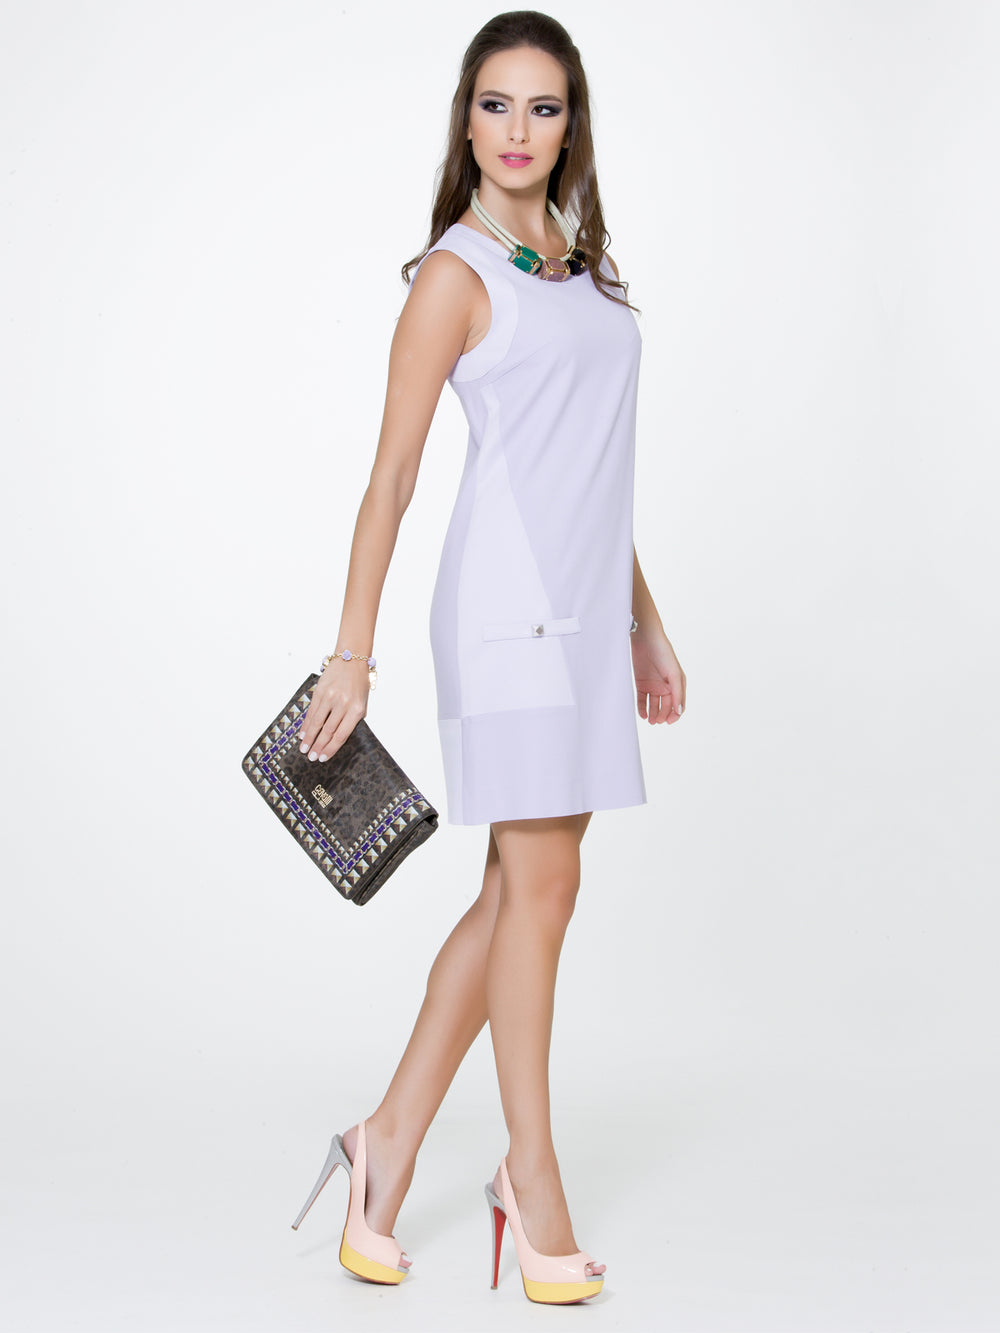 Color Block Lavender Dress, BYBLOS - elilhaam.com